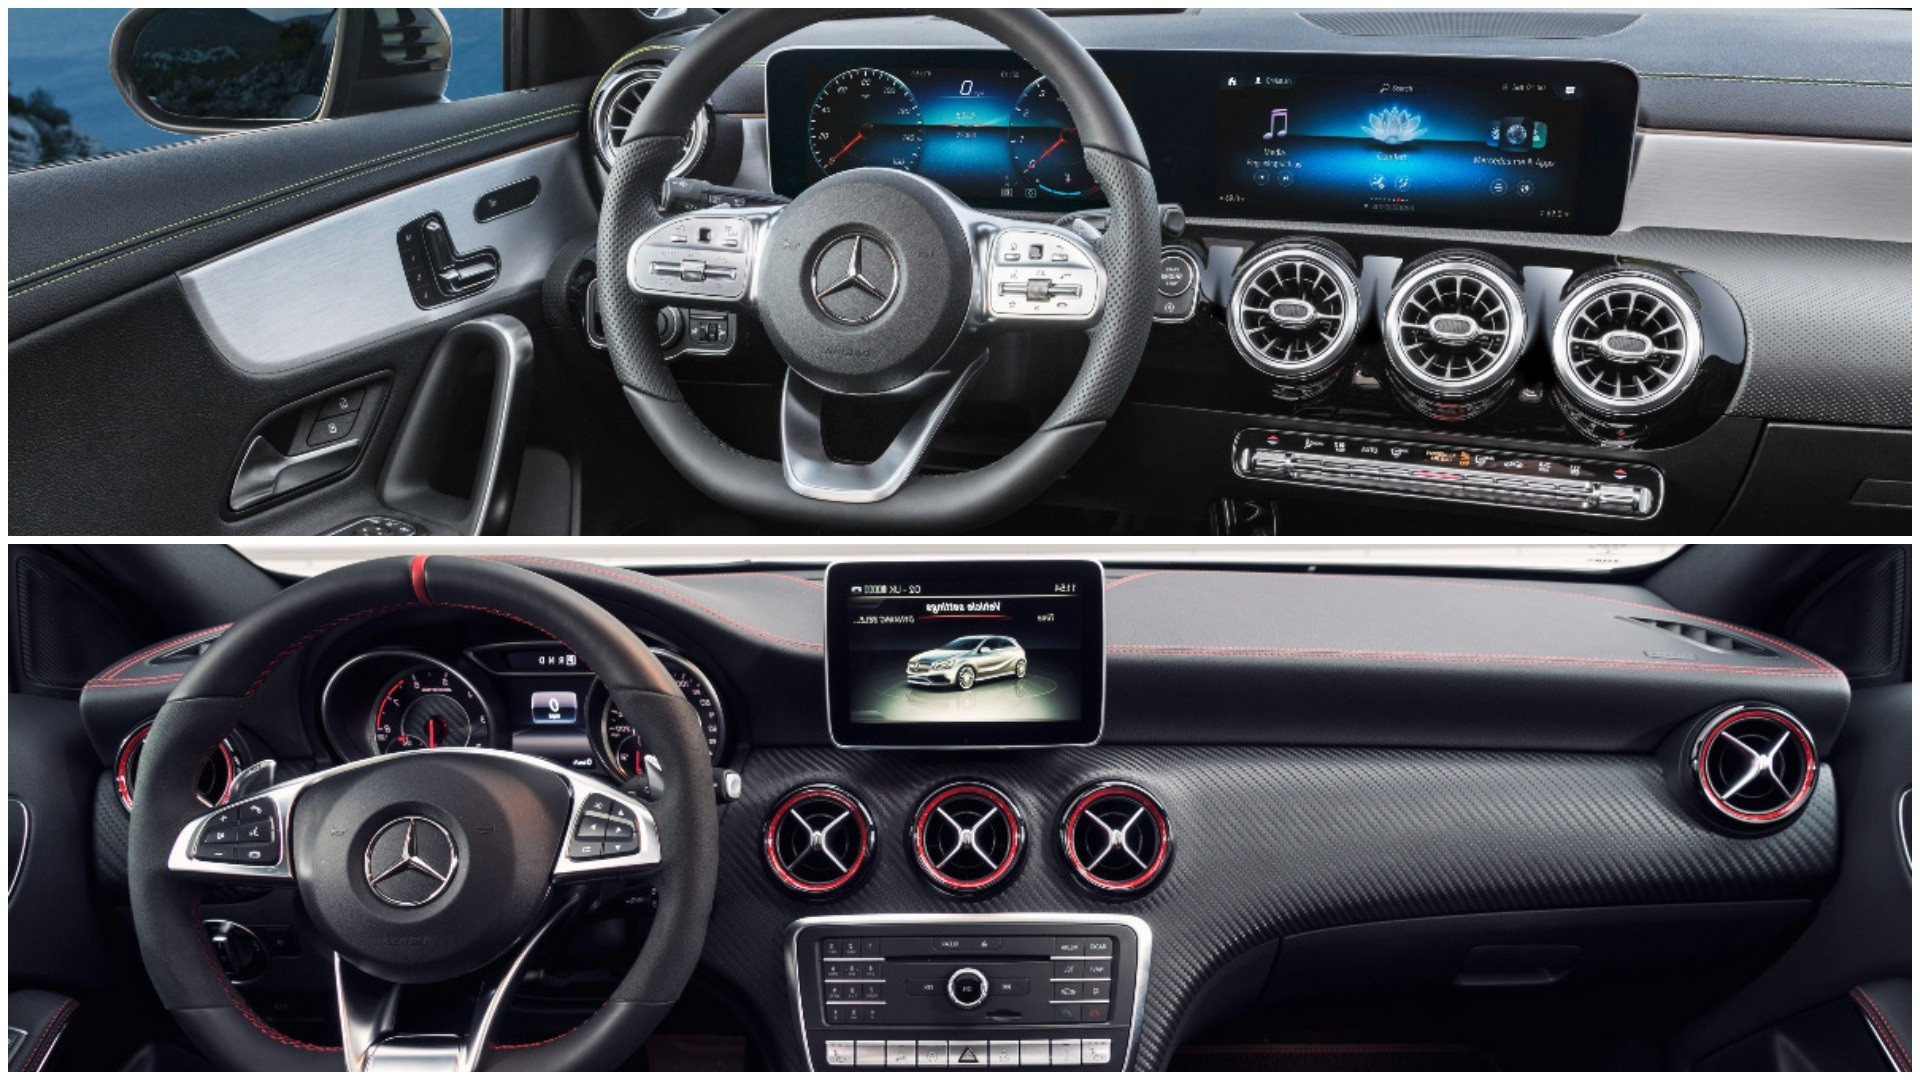 Photo Comparison 2019 W177 Mercedes A Class Vs Old W176